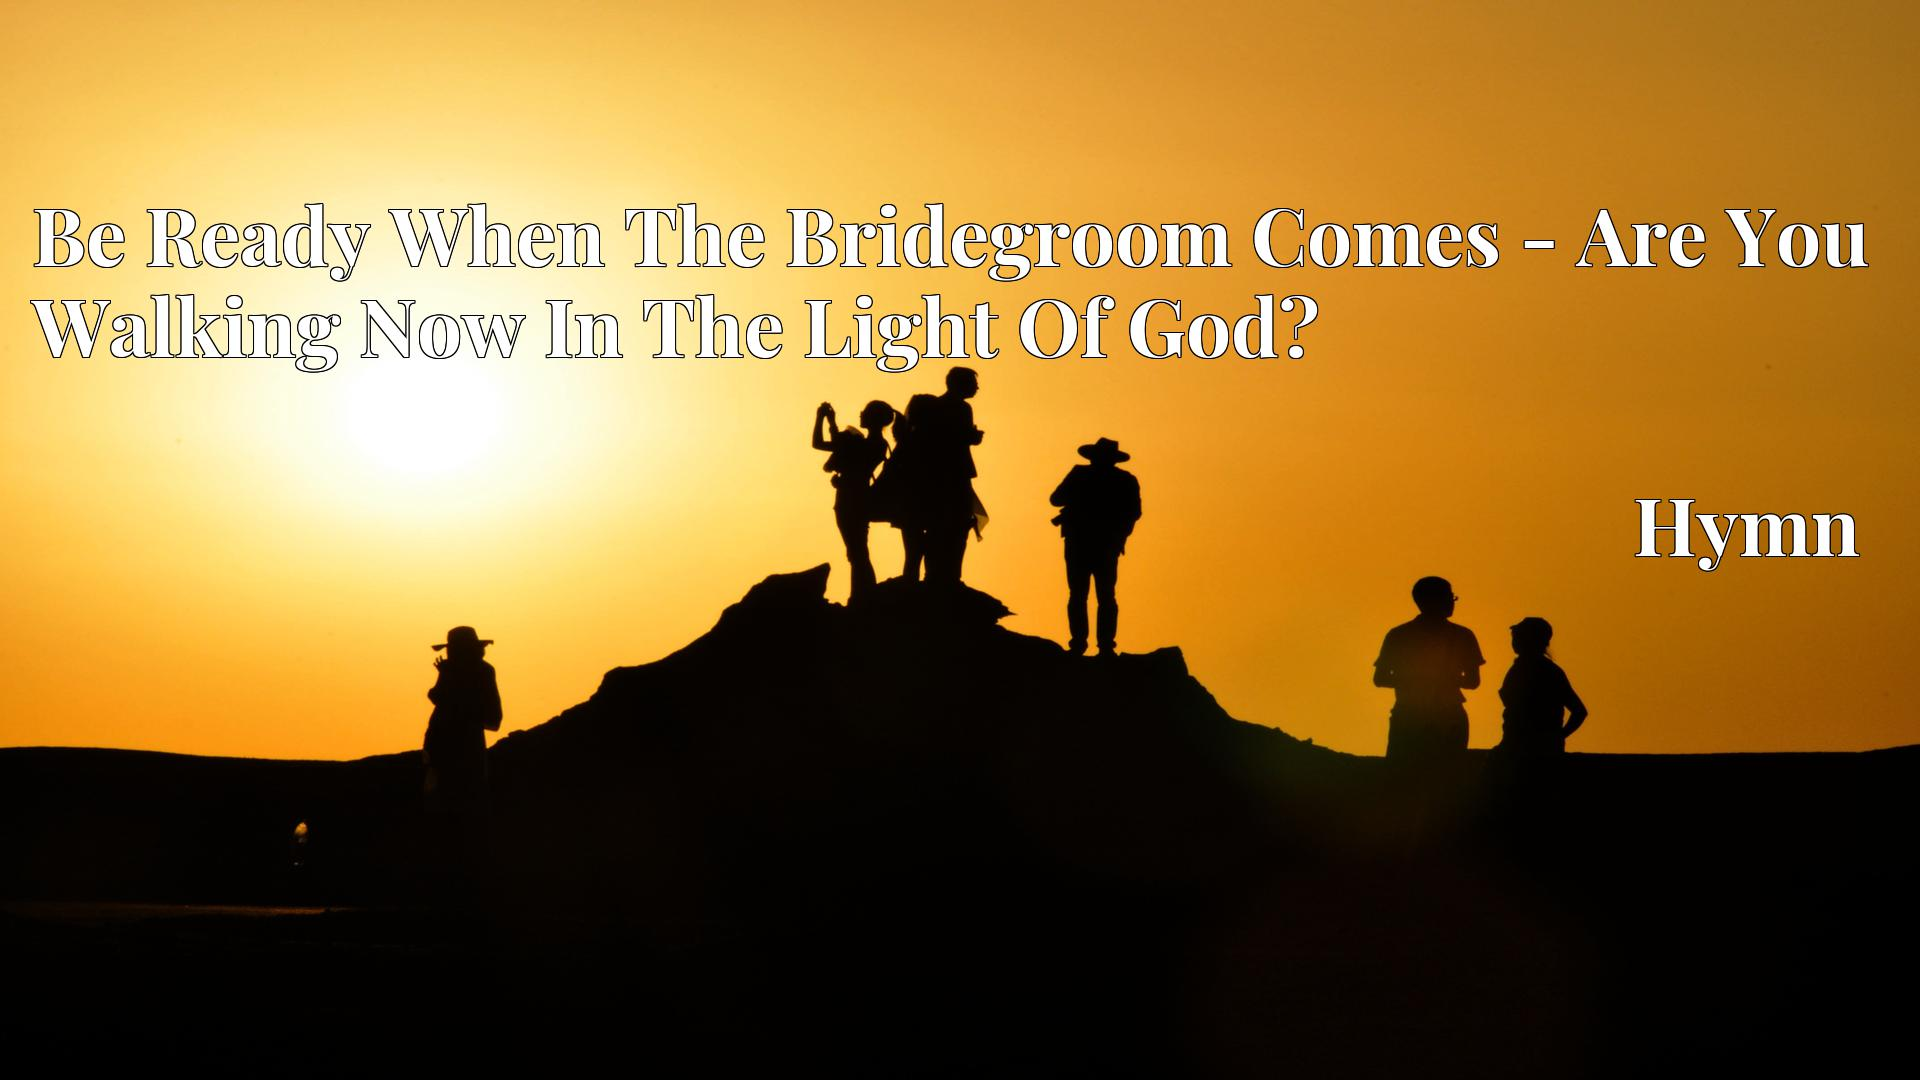 Be Ready When The Bridegroom Comes - Are You Walking Now In The Light Of God? - Hymn